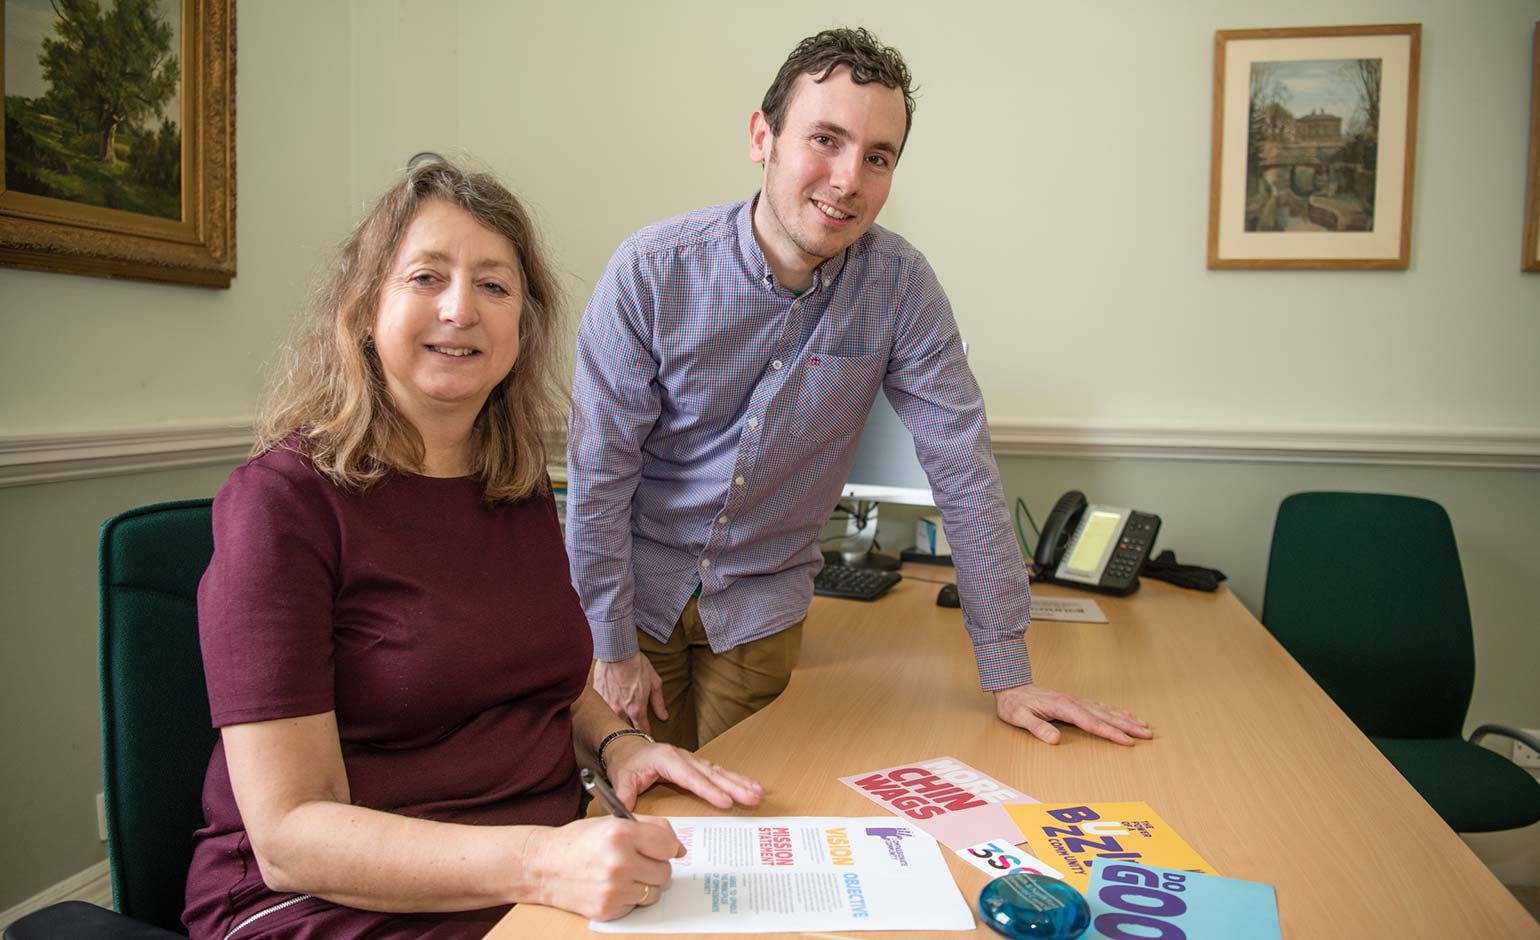 Council latest organisation to join Compassionate Community campaign